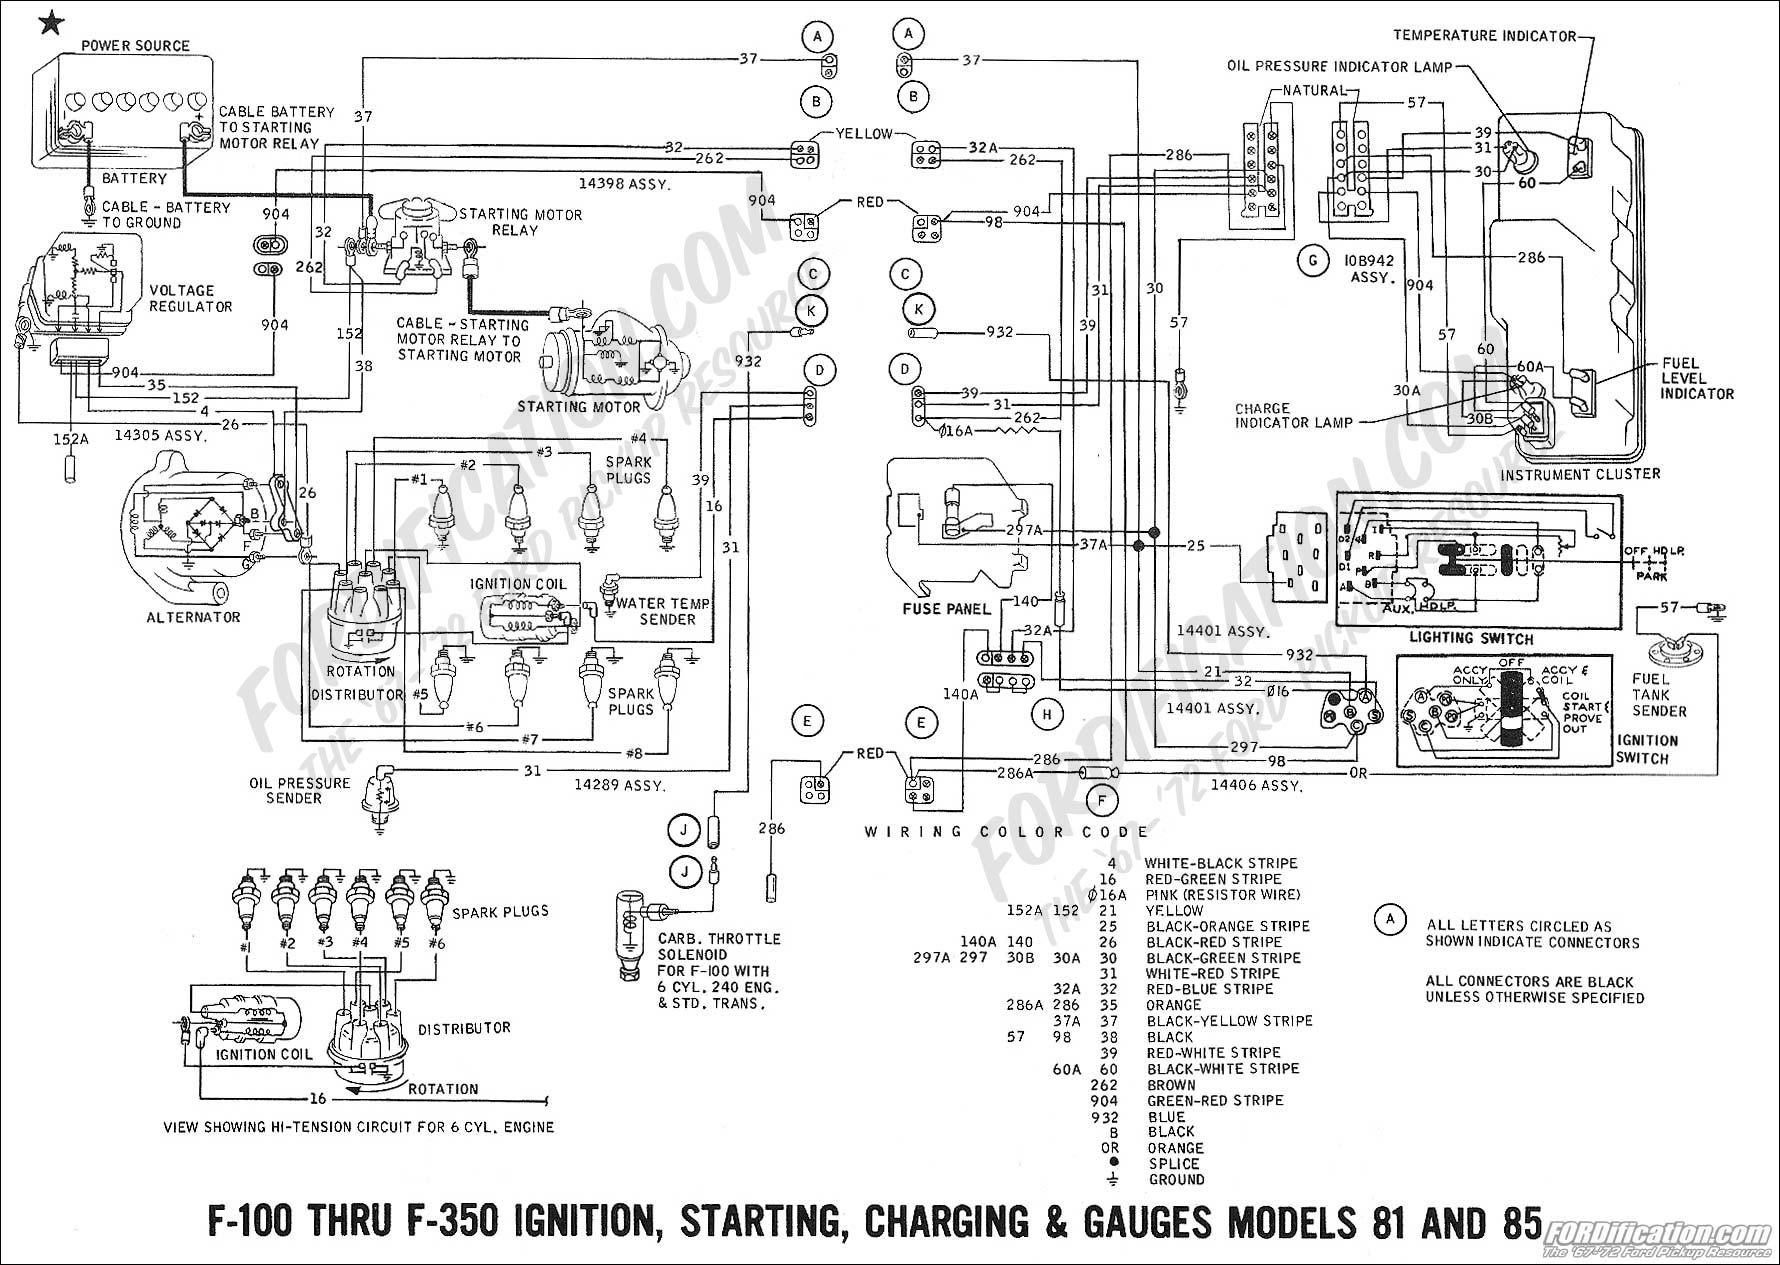 wiring 1969charging2?qualityd806stripdall ford e350 wiring diagram efcaviation com 2004 ford e350 fuse box diagram at gsmportal.co